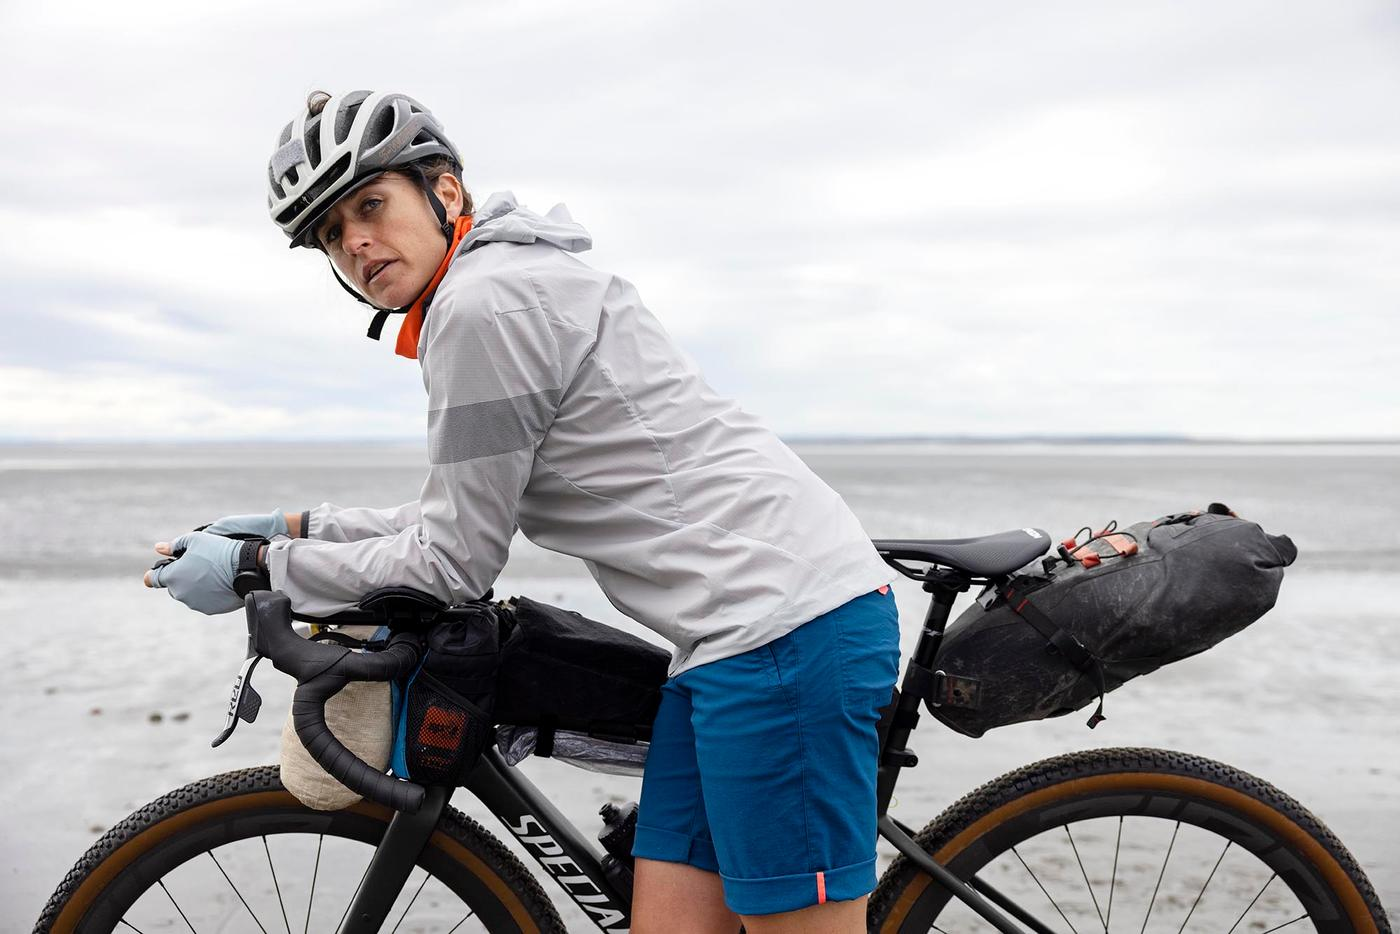 Lael Wilcox's Trans Alaska Pipeline Time Trial Gear List and Introduction